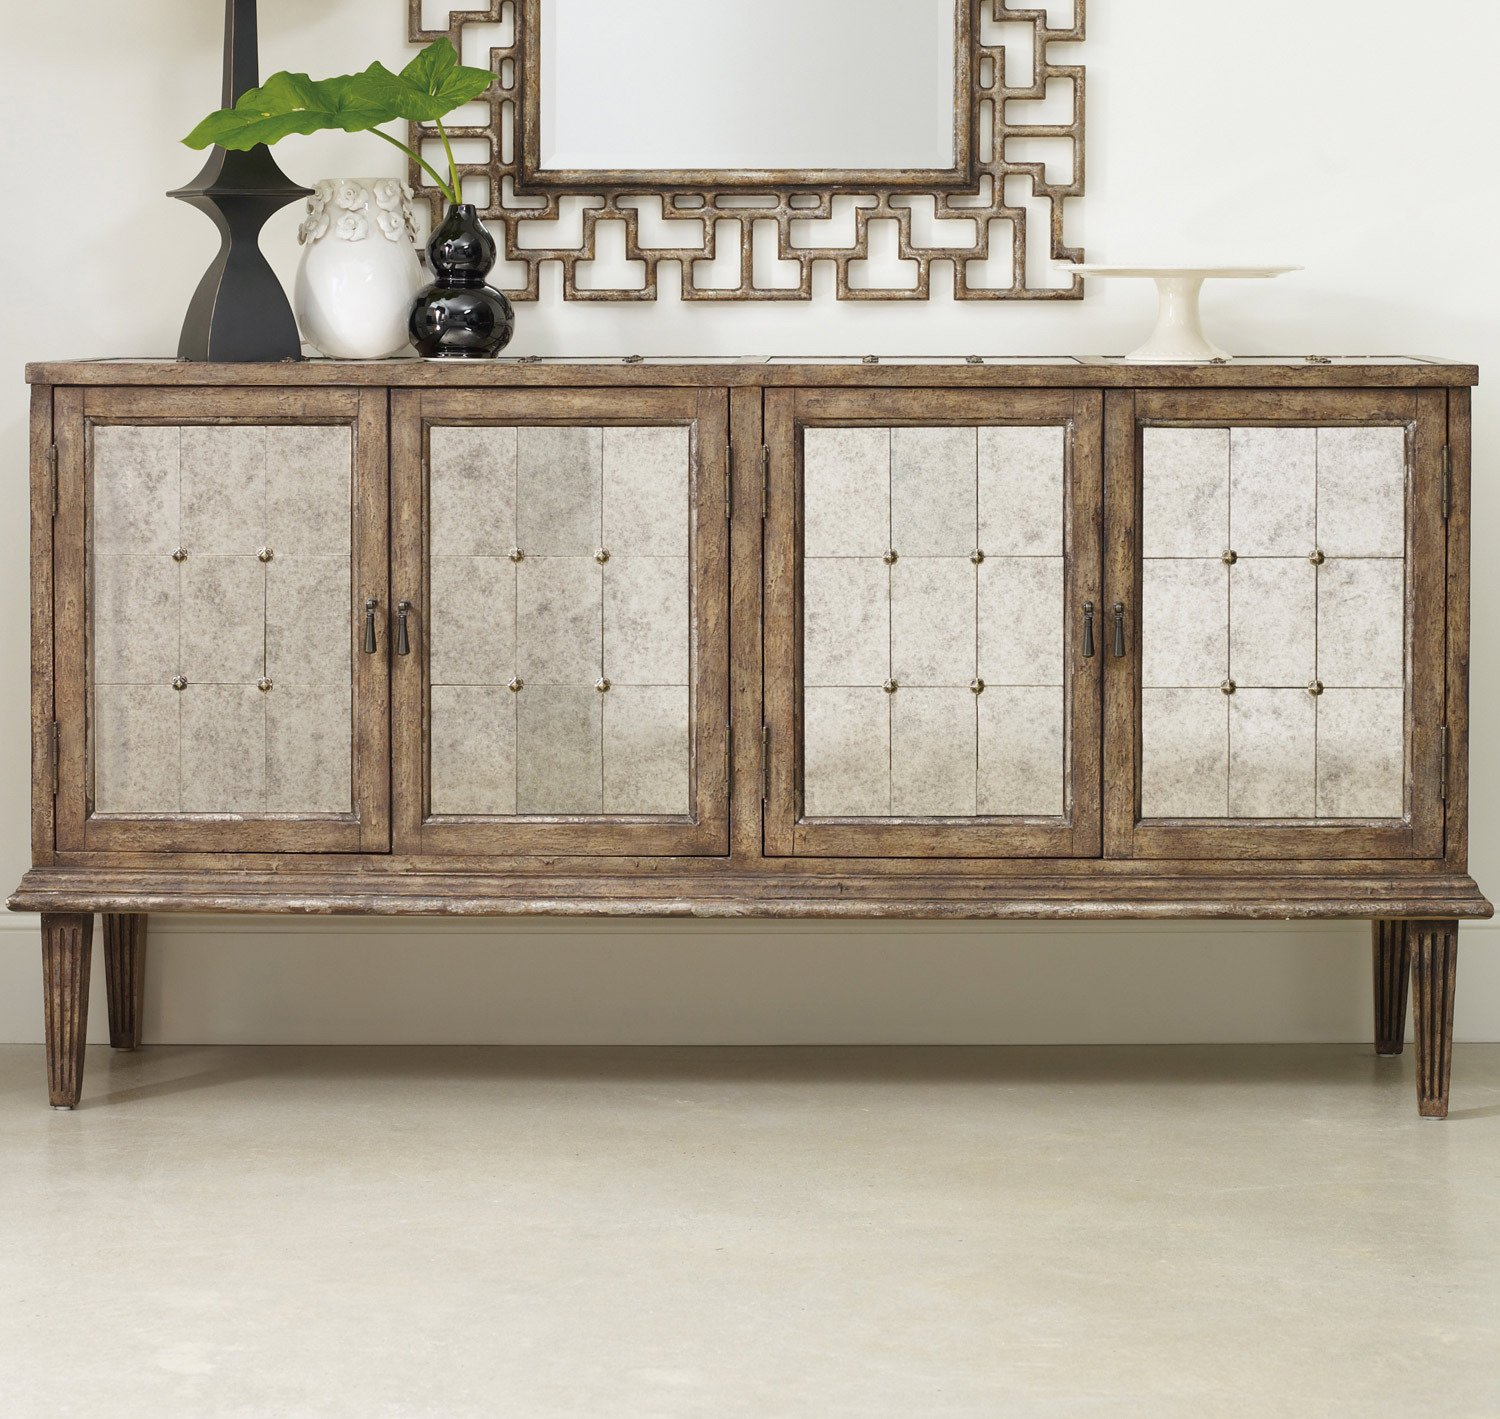 Merveilleux Amazon.com: Hooker Furniture Melange DeVera Mirrored Console Table: Kitchen  U0026 Dining